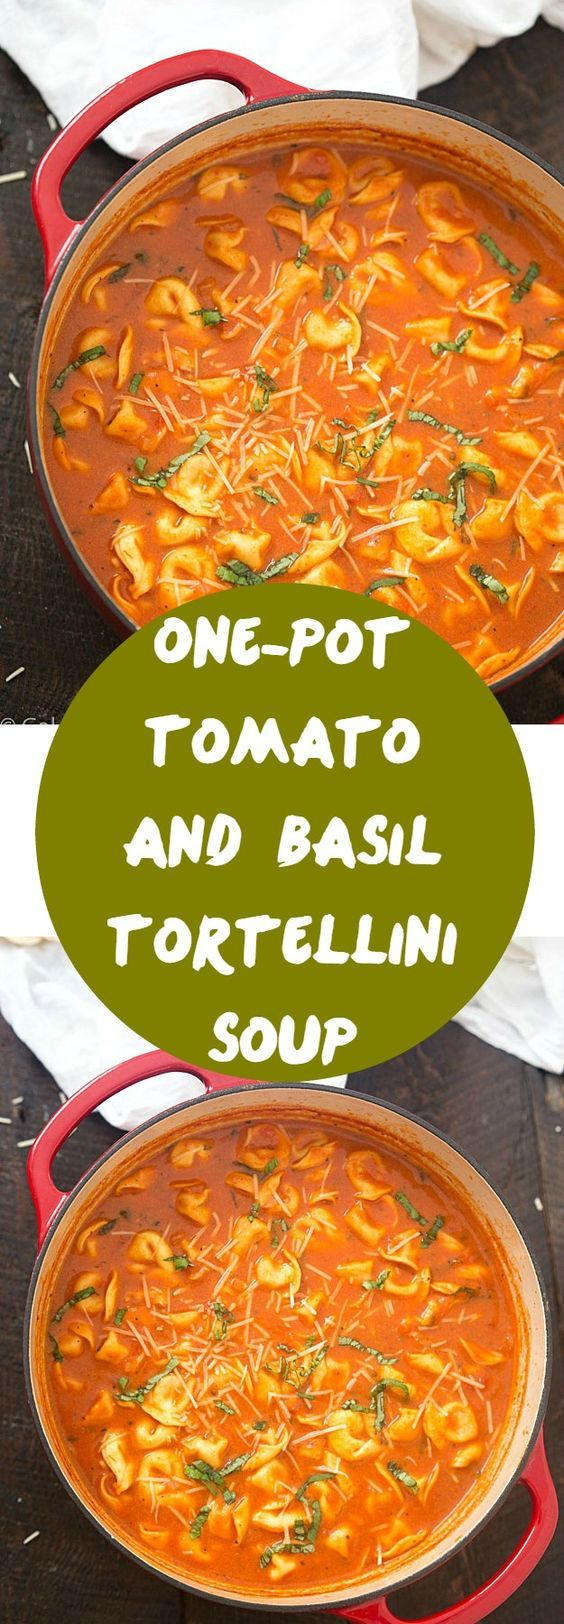 One-Pot Tomato and Basil Tortellini Soup - Hearty, comforting, flavorful and a quick weeknight meal! So much easier than soup in the crock-pot! -   23 fall dinner recipes ideas